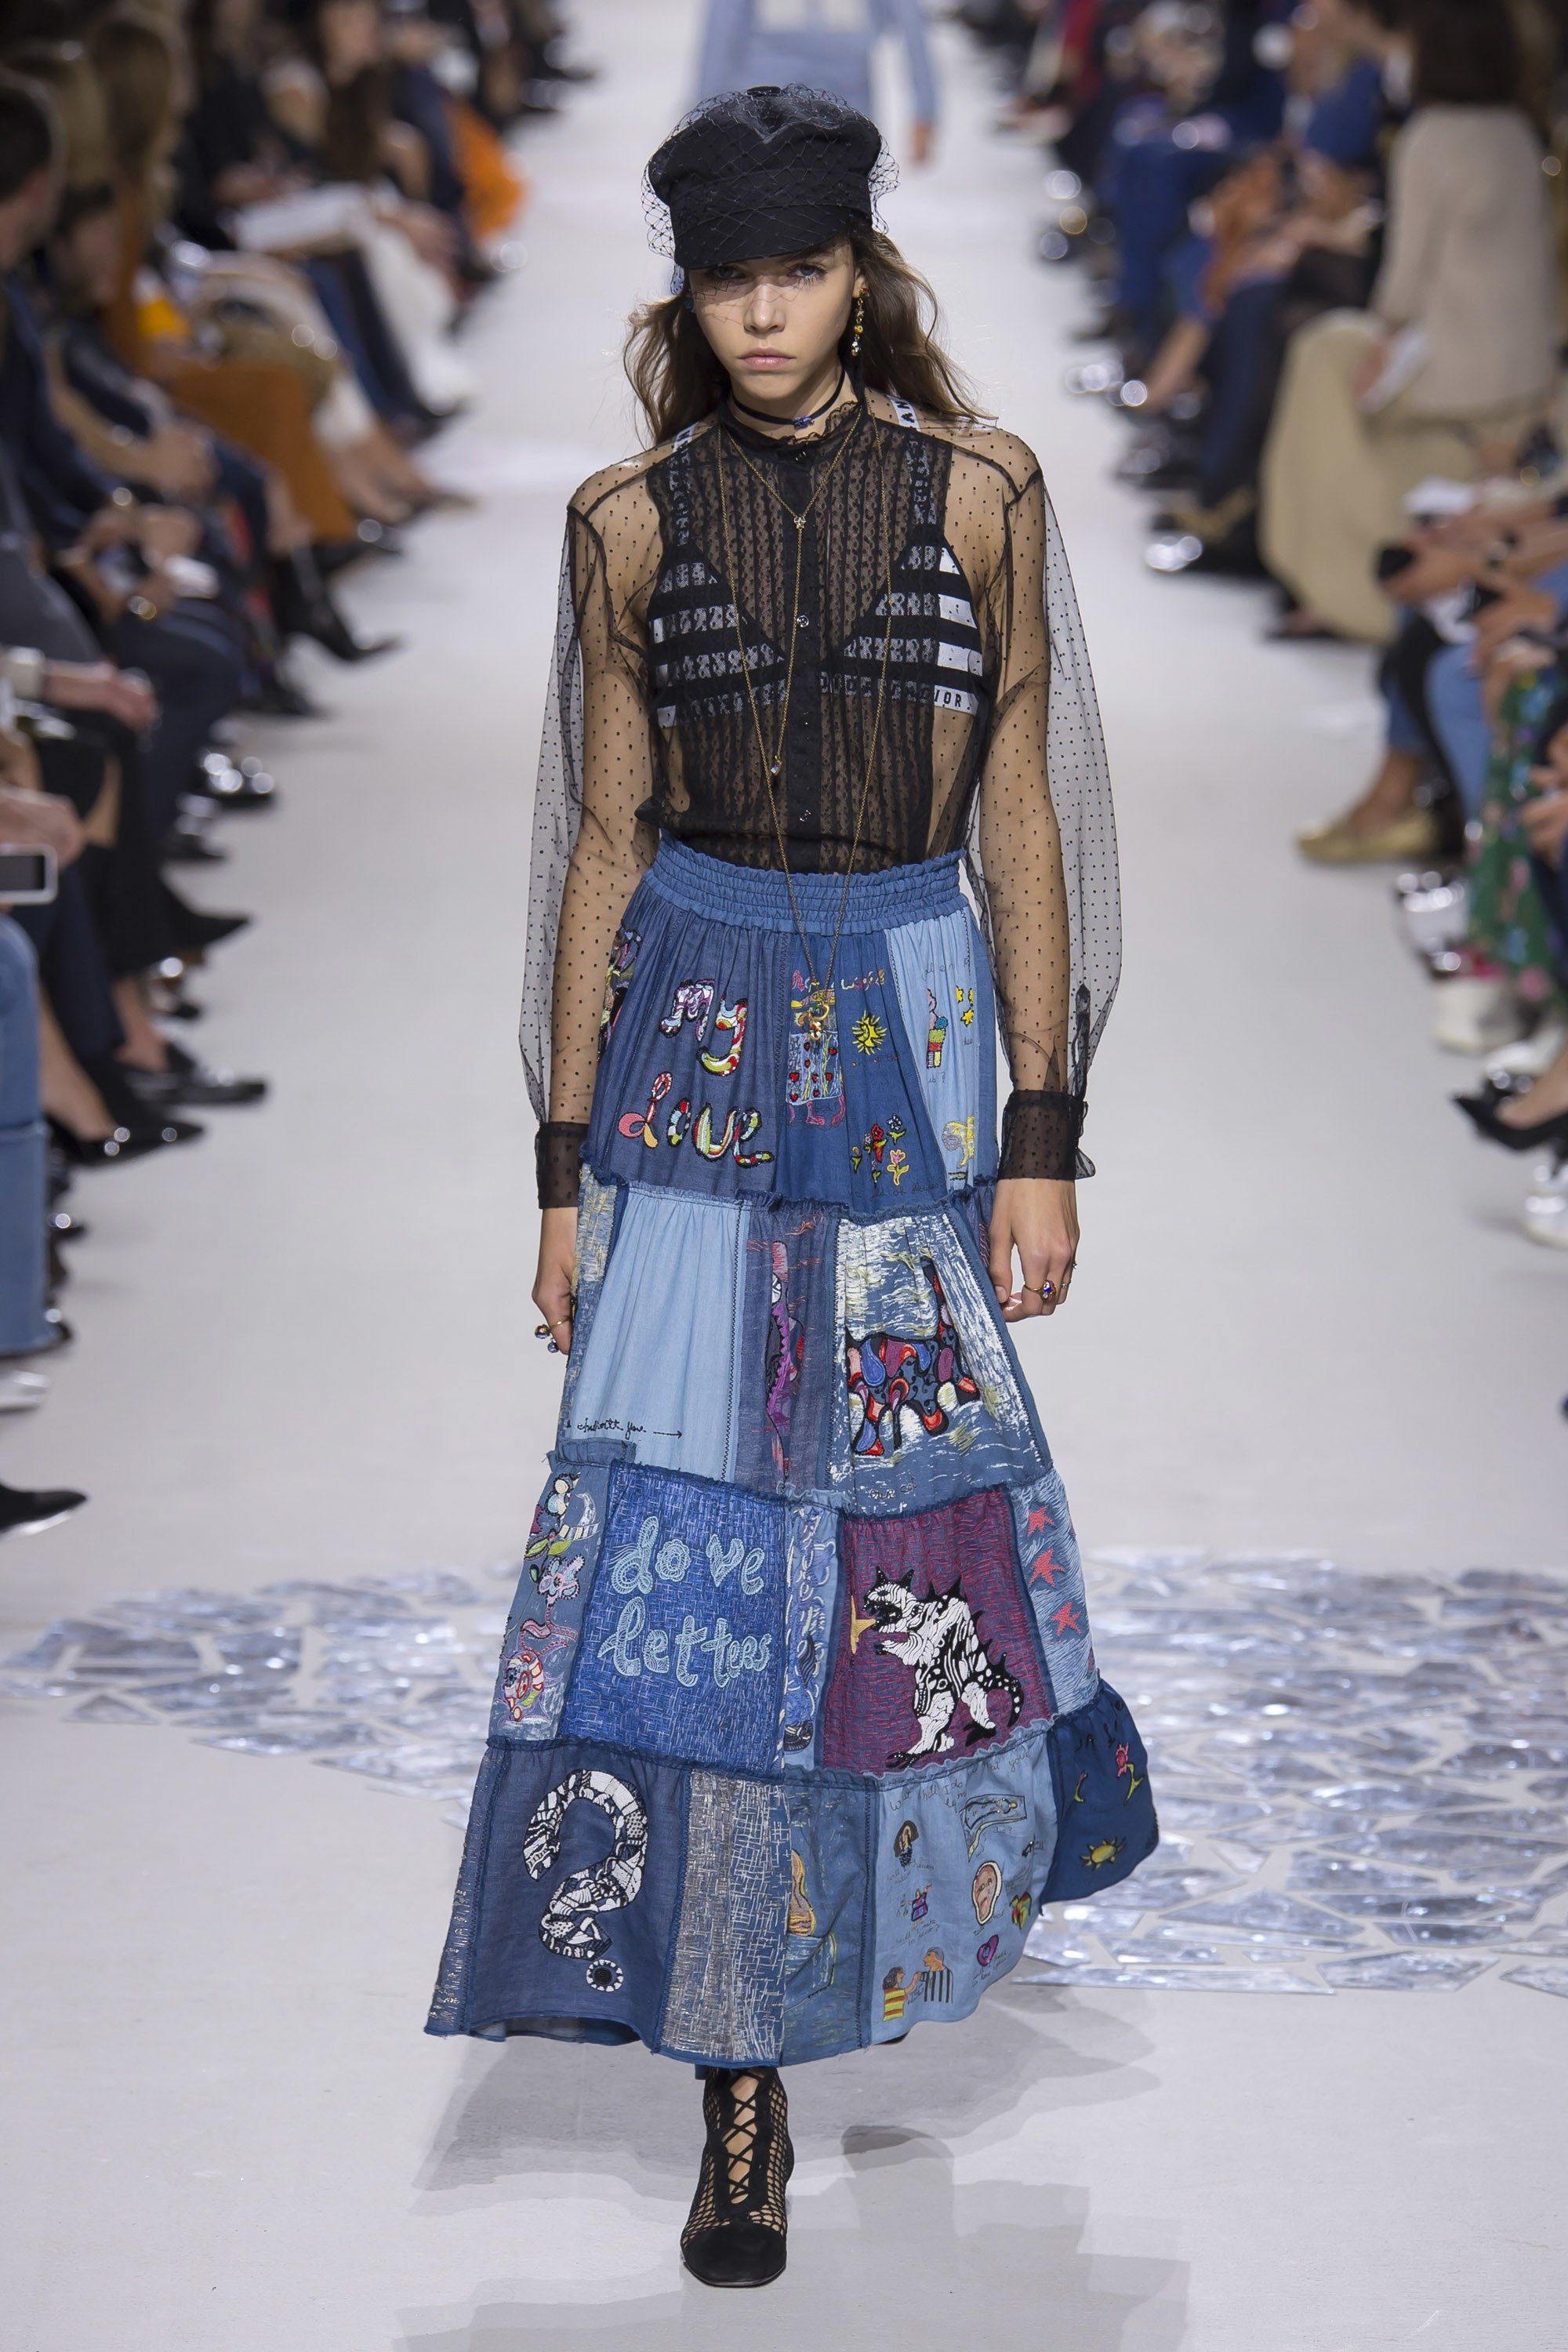 Dior christian spring ready-to-wear fashion show photos